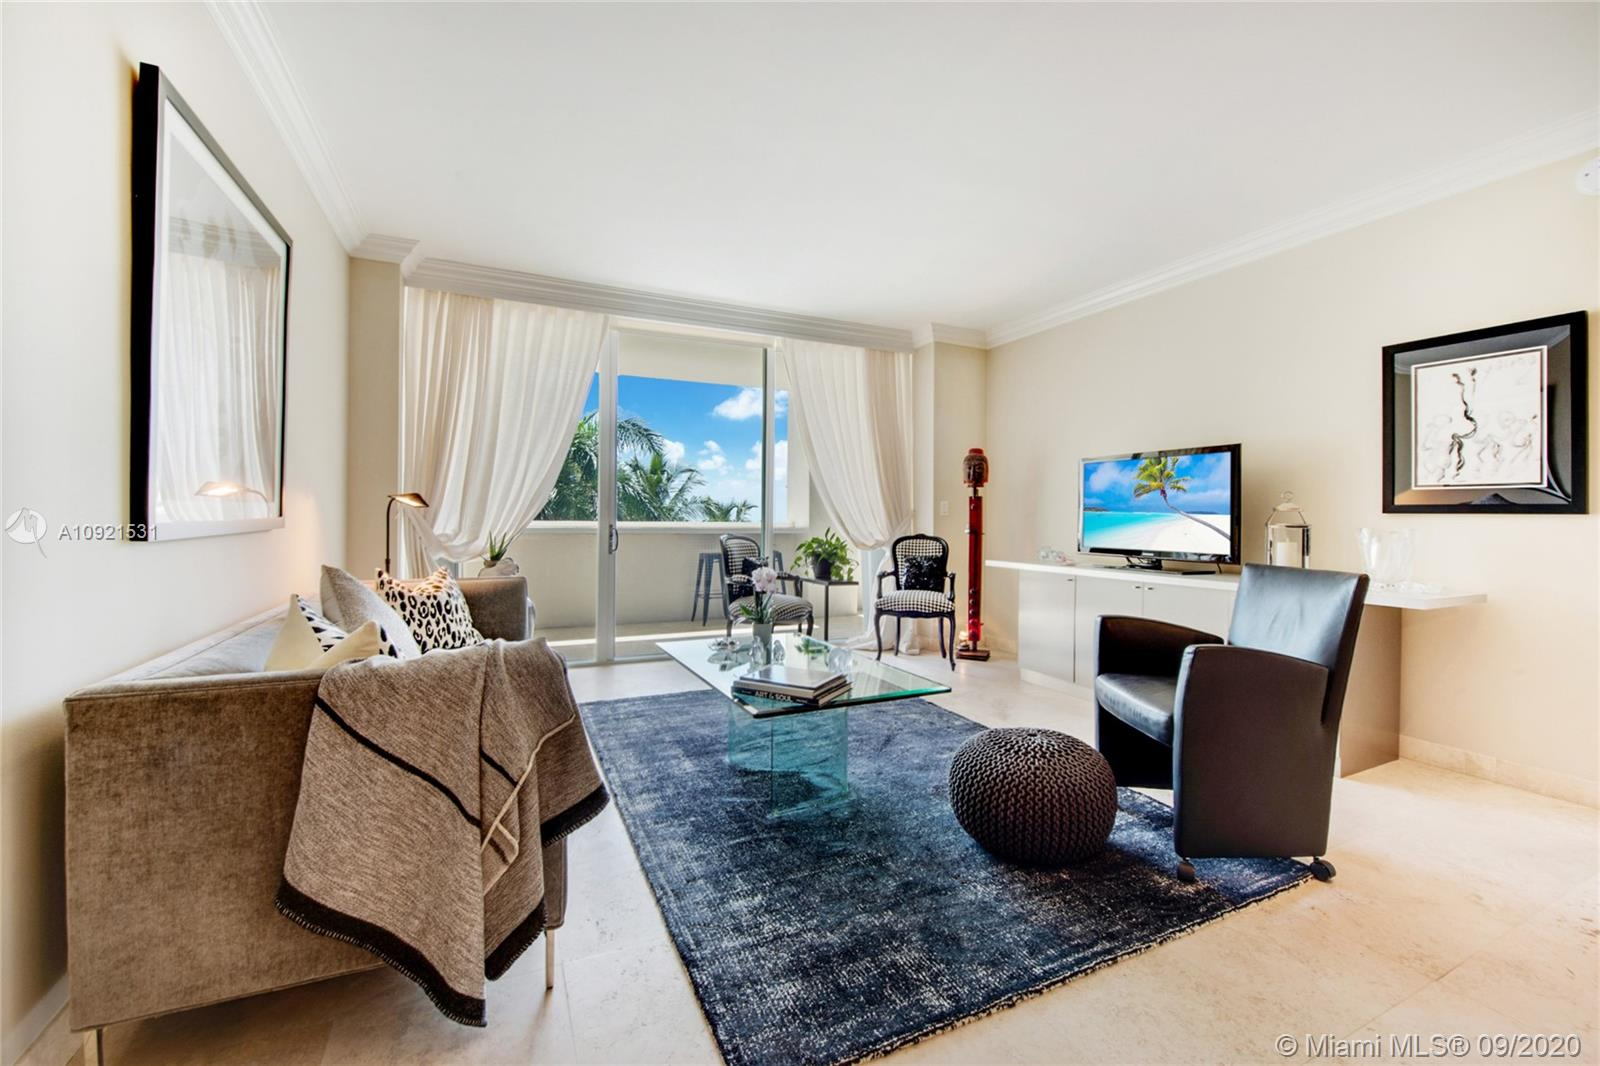 "Large one-bedroom with water and park views at the Ritz-Carlton in the heart of Coconut Grove across from Biscayne Bay, Regatta park and the marina. Updated kitchen with all new appliances, Poggenpohl cabinets and granite countertops. 18""x18"" marble floors throughout. Large master bedroom with two walk-in closets and luxurious master bath with separate shower and tub and dual sinks.  261 SF terrace overlooking the bay, park and pool. Access to all 5-star hotel amenities including full-service pool, spa, fitness center, restaurants & bars, concierge and valet parking plus residents-only amenities. Walking distance to waterfront parks, restaurants, shops and entertainment. Easy drive to Miami Beach, Downtown Miami, Coral Gables and the Miami International Airport. Easy to show."